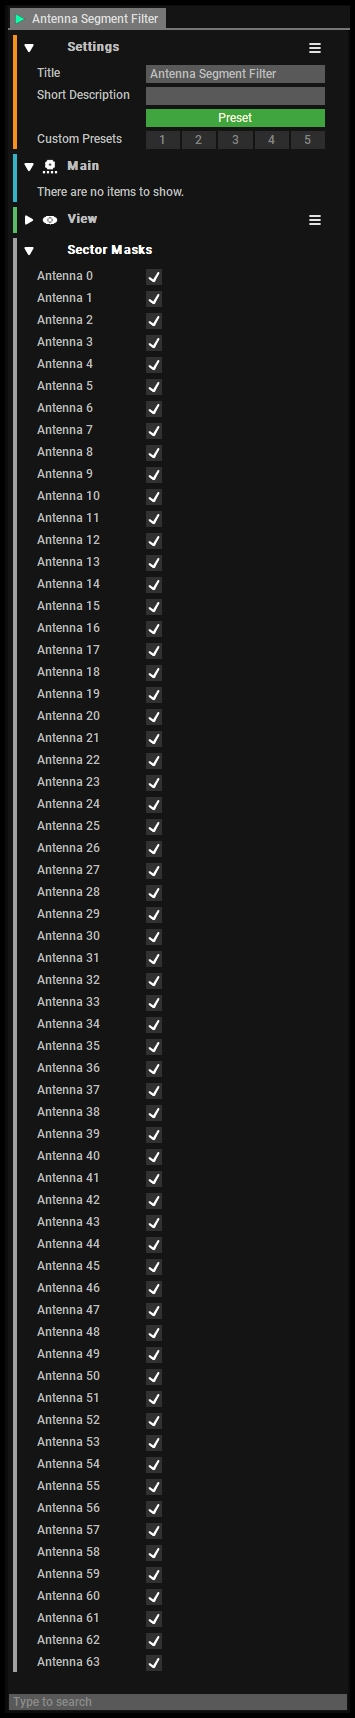 Select the antenna(s) from interest